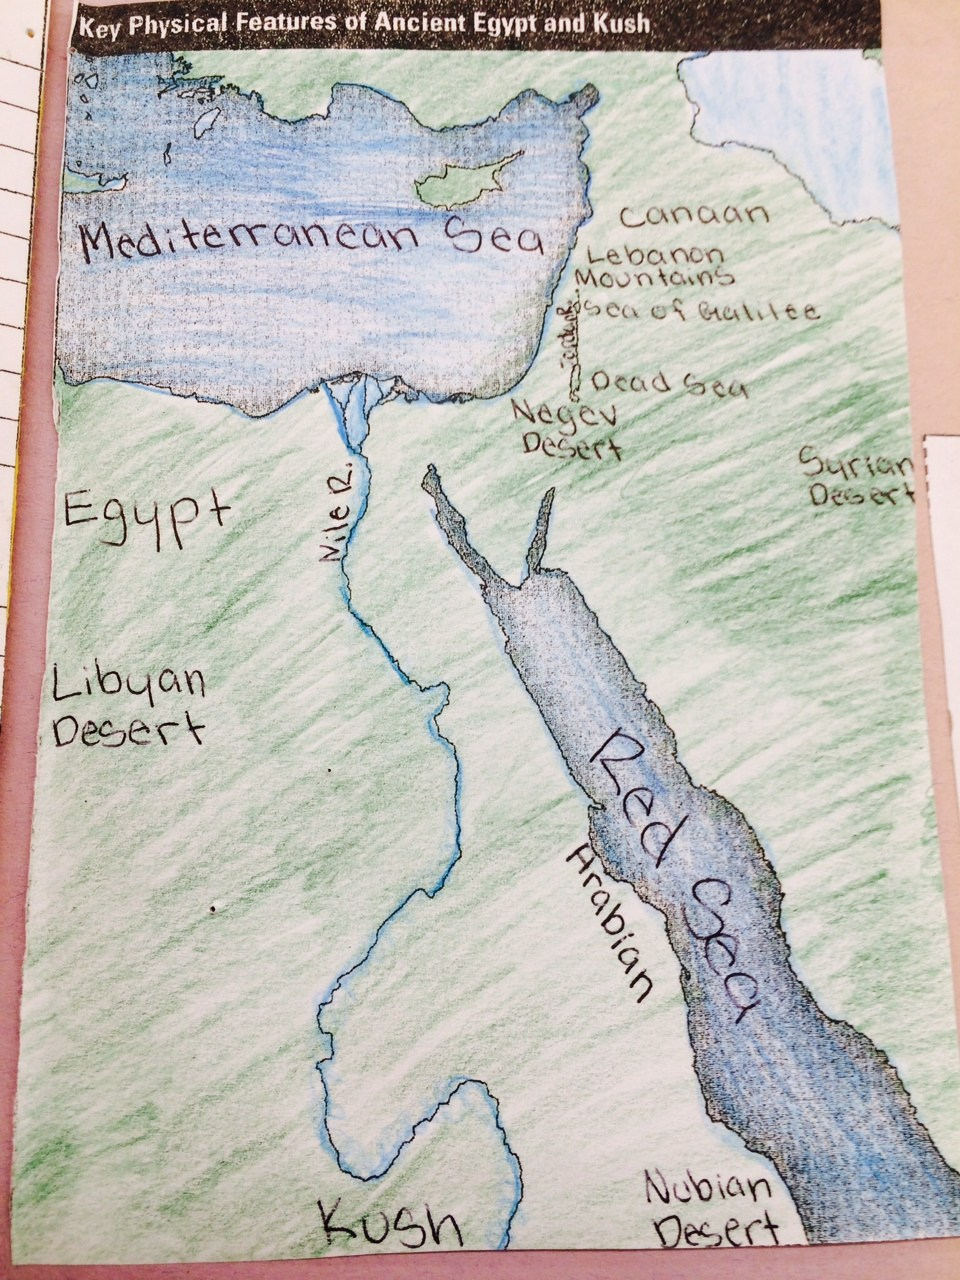 Kush Egypt Canaan Map Blank Pictures To Pin On Pinterest ThePinsta - Map of ancient egypt kush and israel